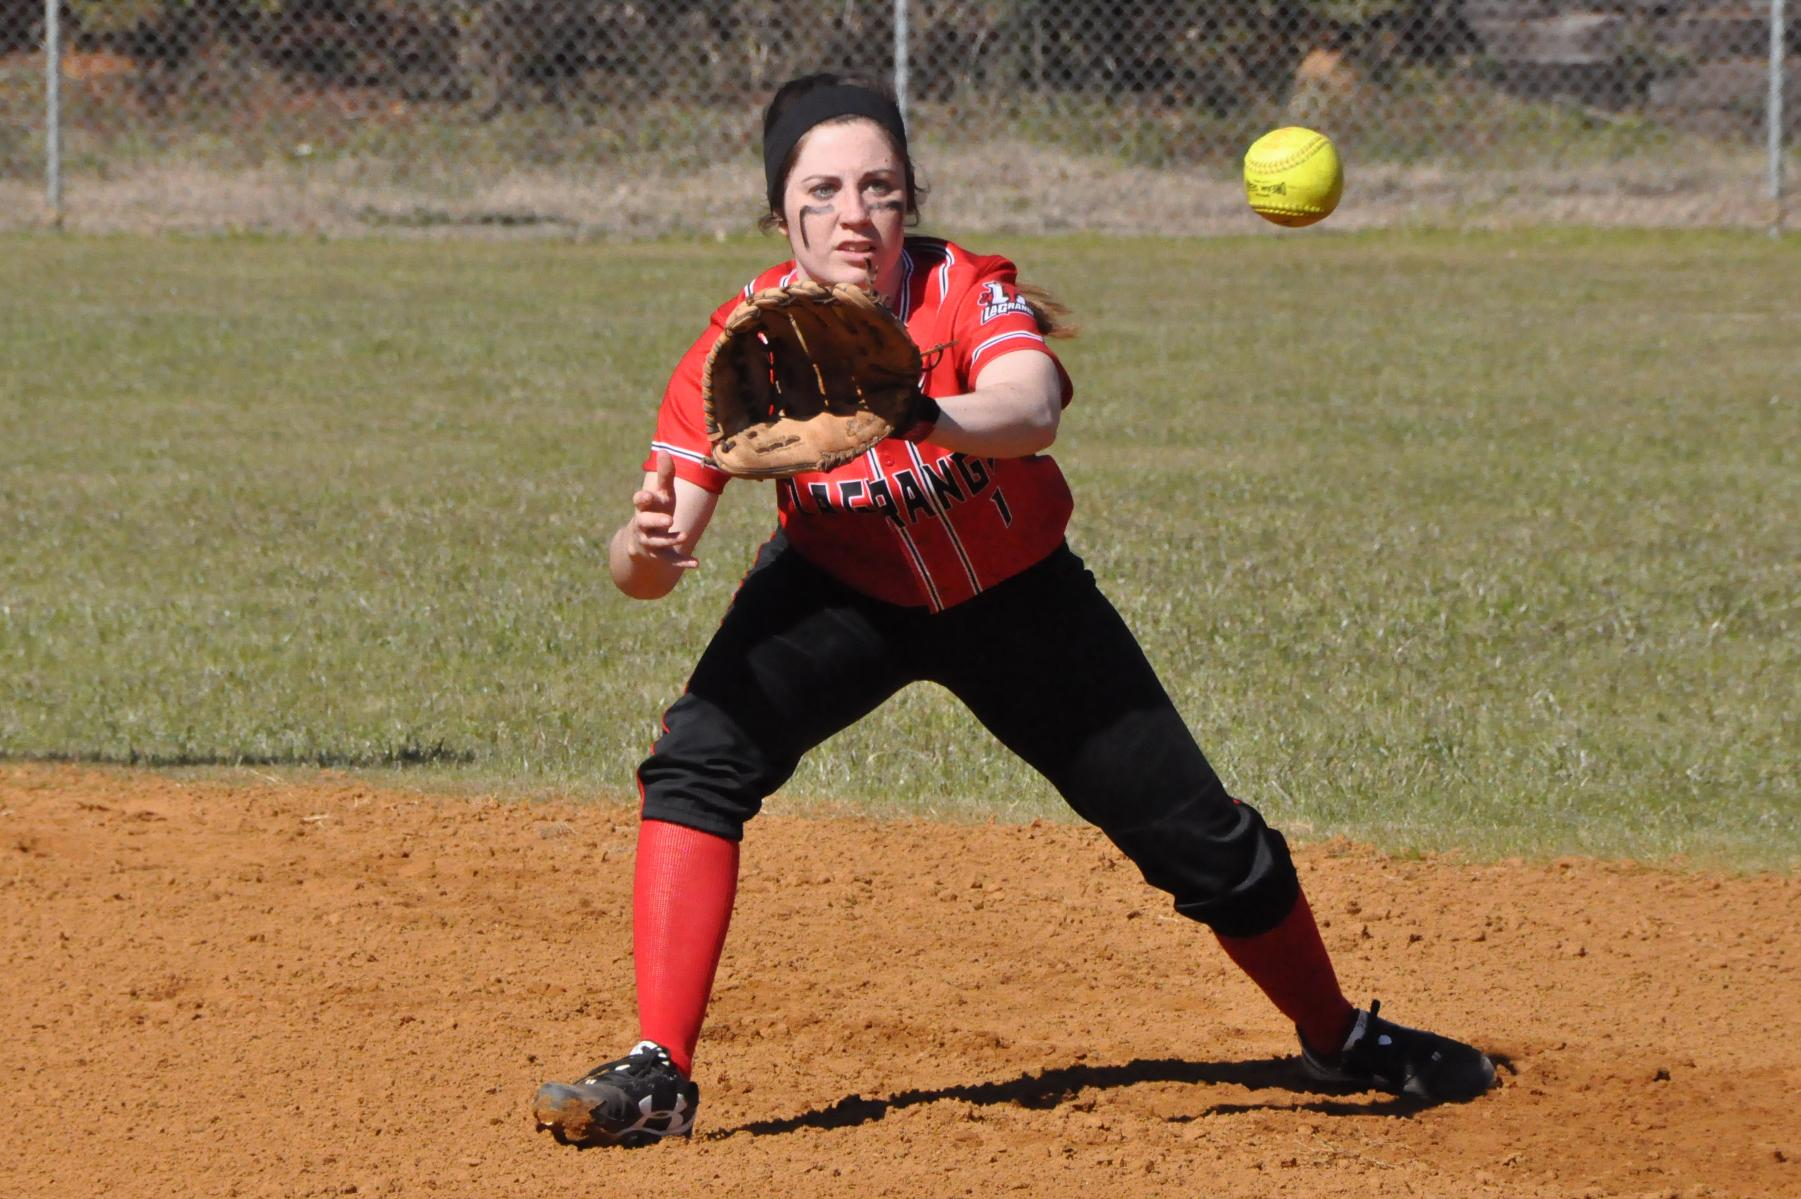 Softball: Panthers have 17 hits in Game 2 to gain split of DH at Wesleyan